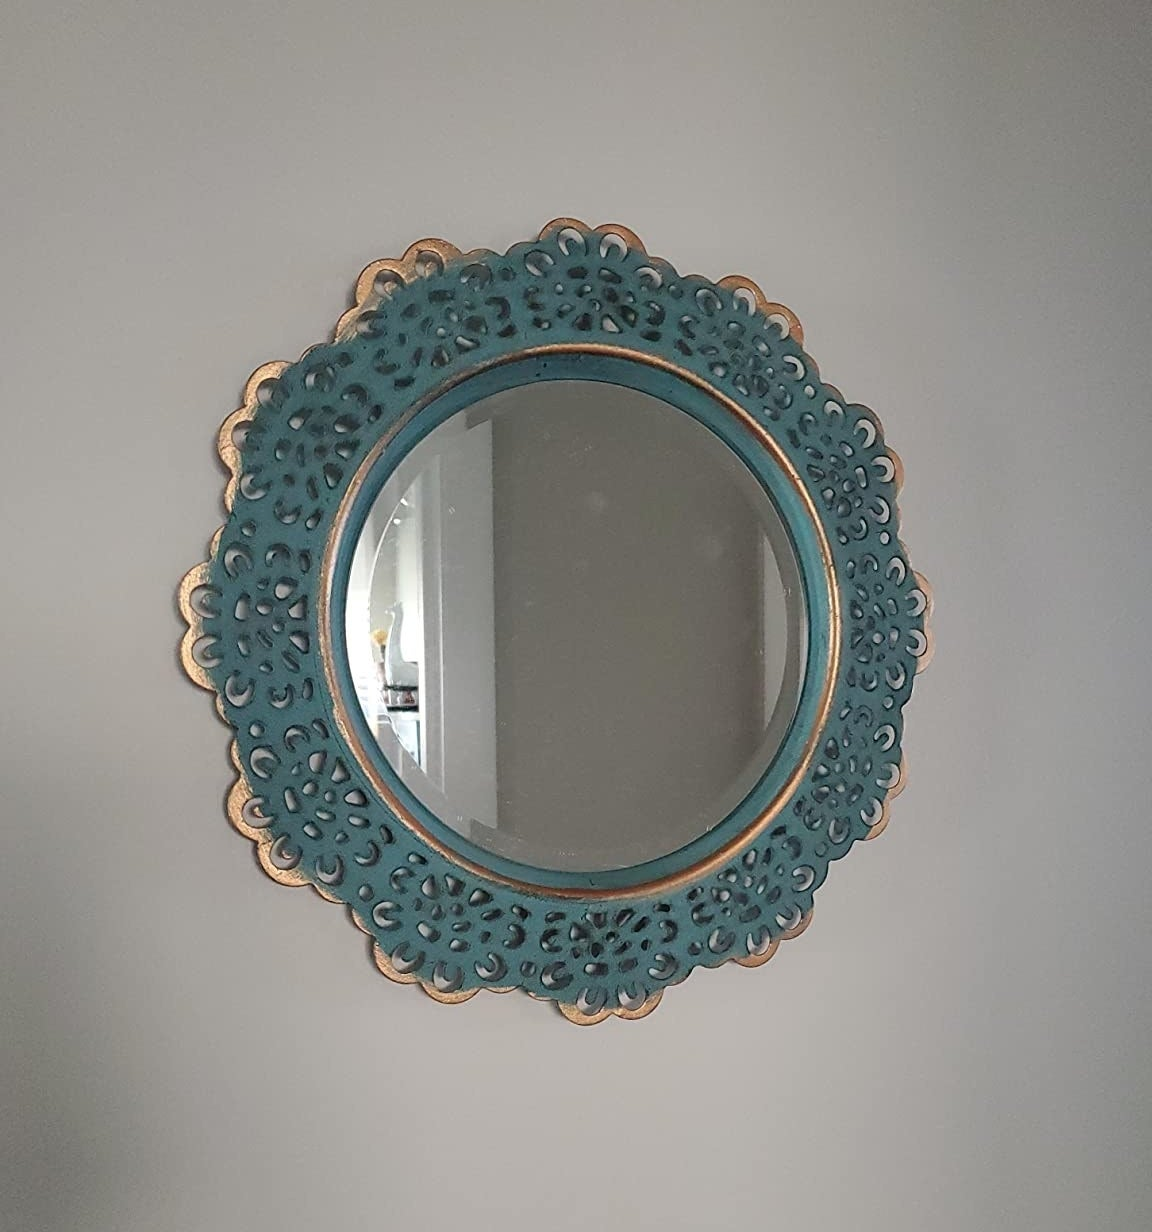 reviewer image of the turquoise stonebriar decorative round metal lace mirror mounted on a wall